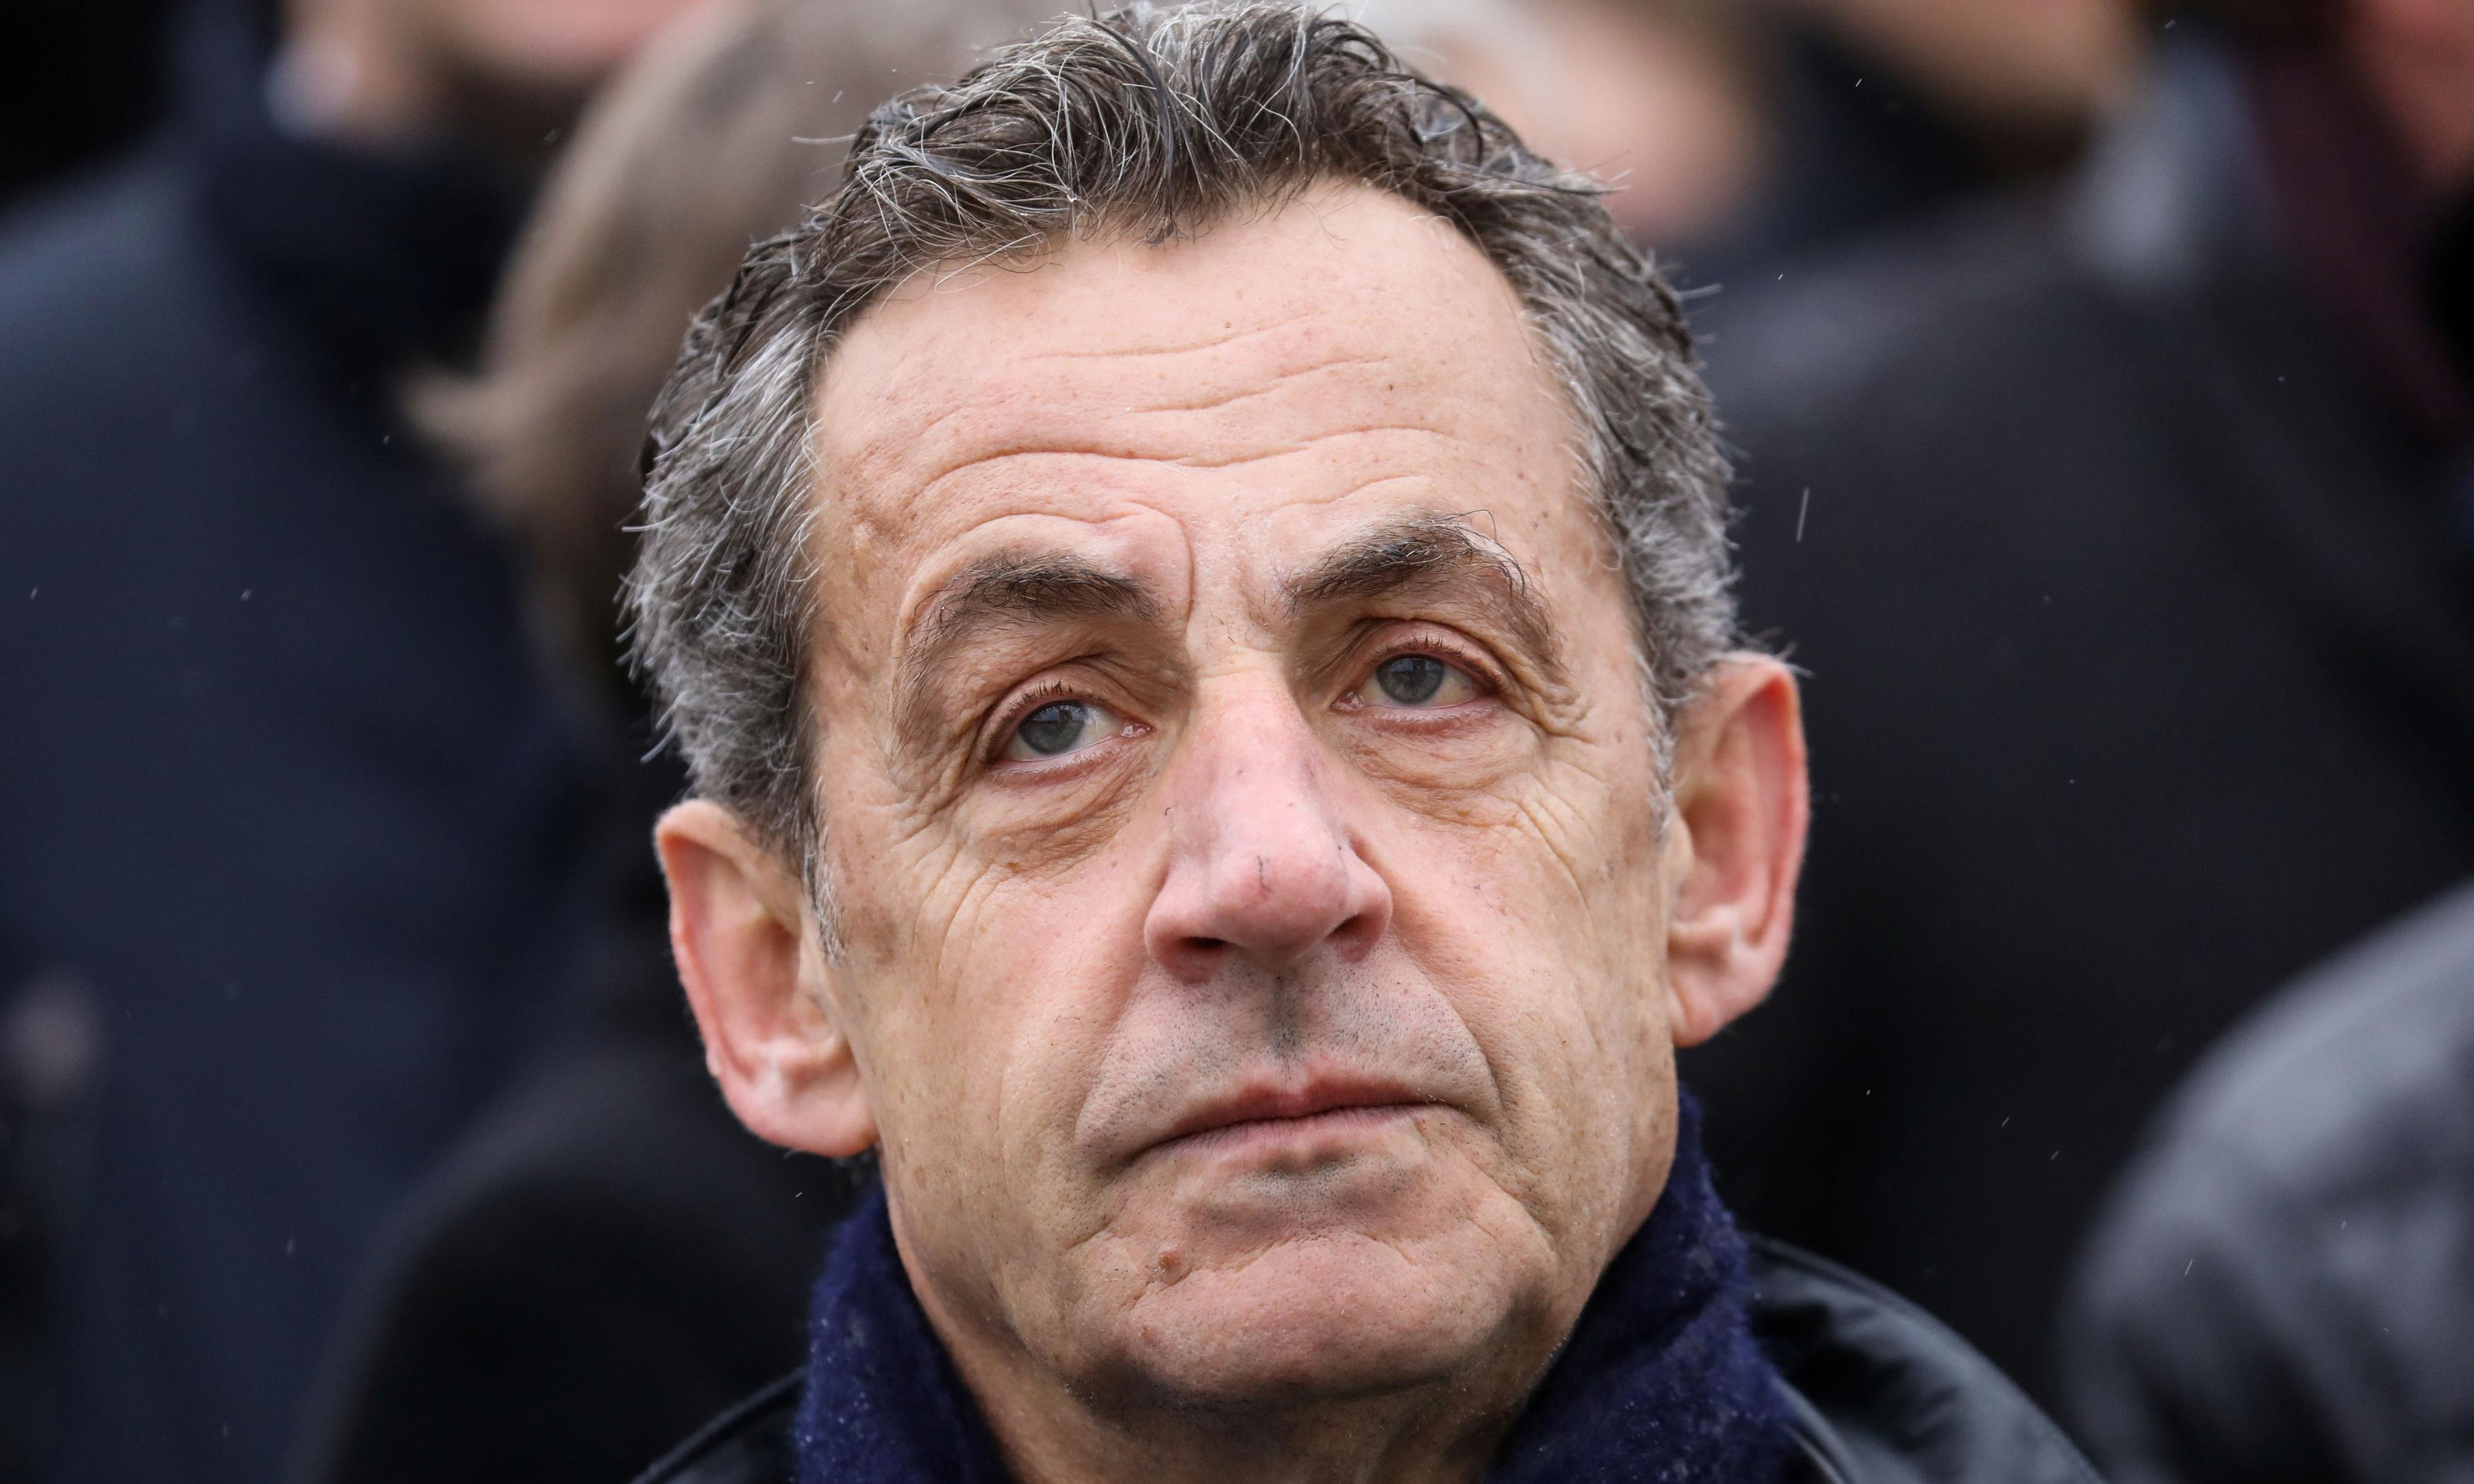 French ex-president Nicolas Sarkozy to stand trial in October